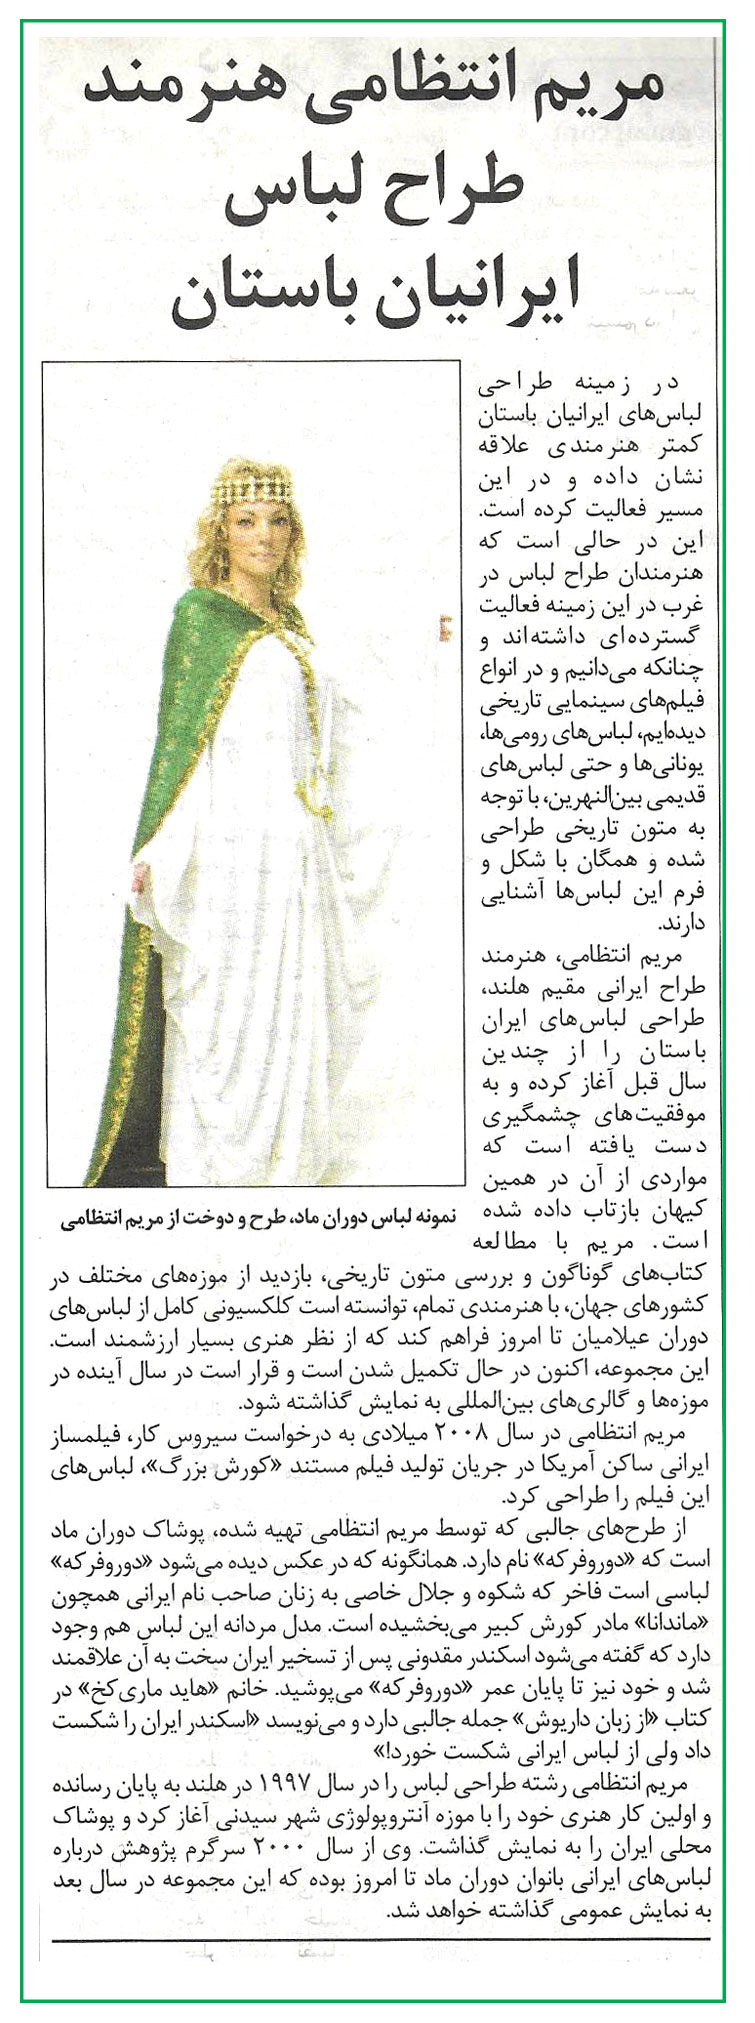 Kayhan Newspaper England 2010 - News & Press - Historic Persian Fashion Design & Research